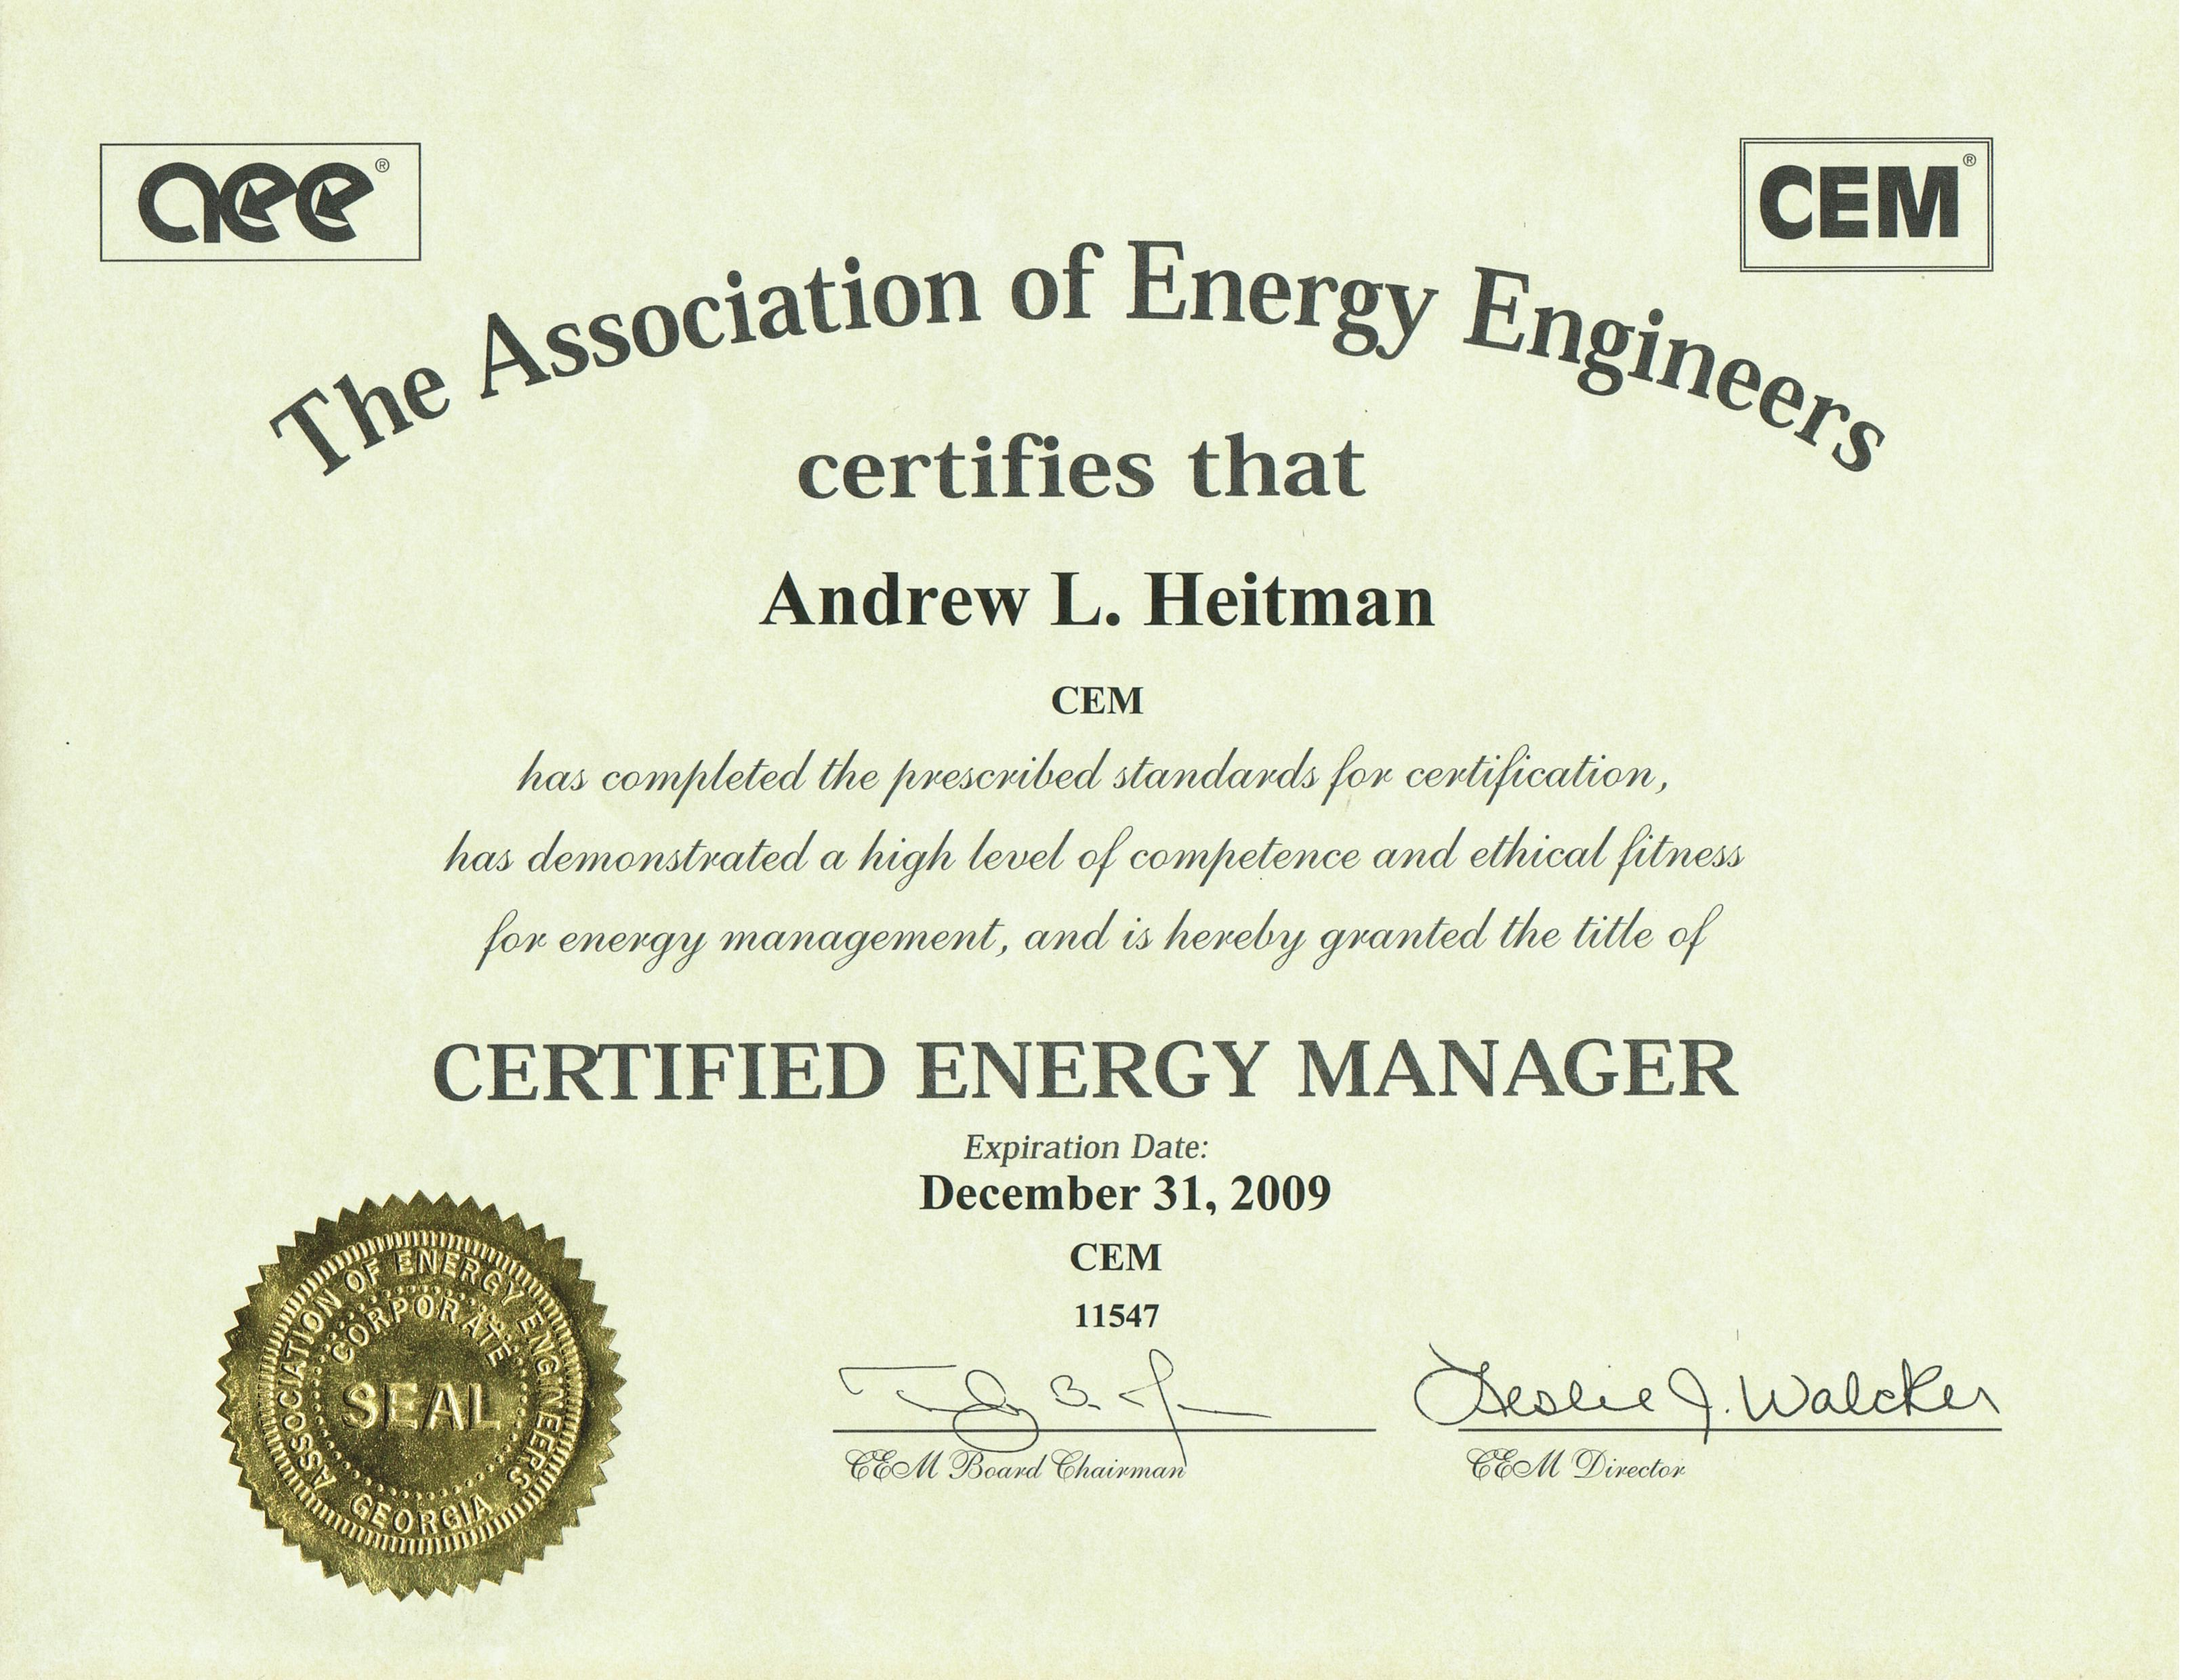 Certified Energy Manager